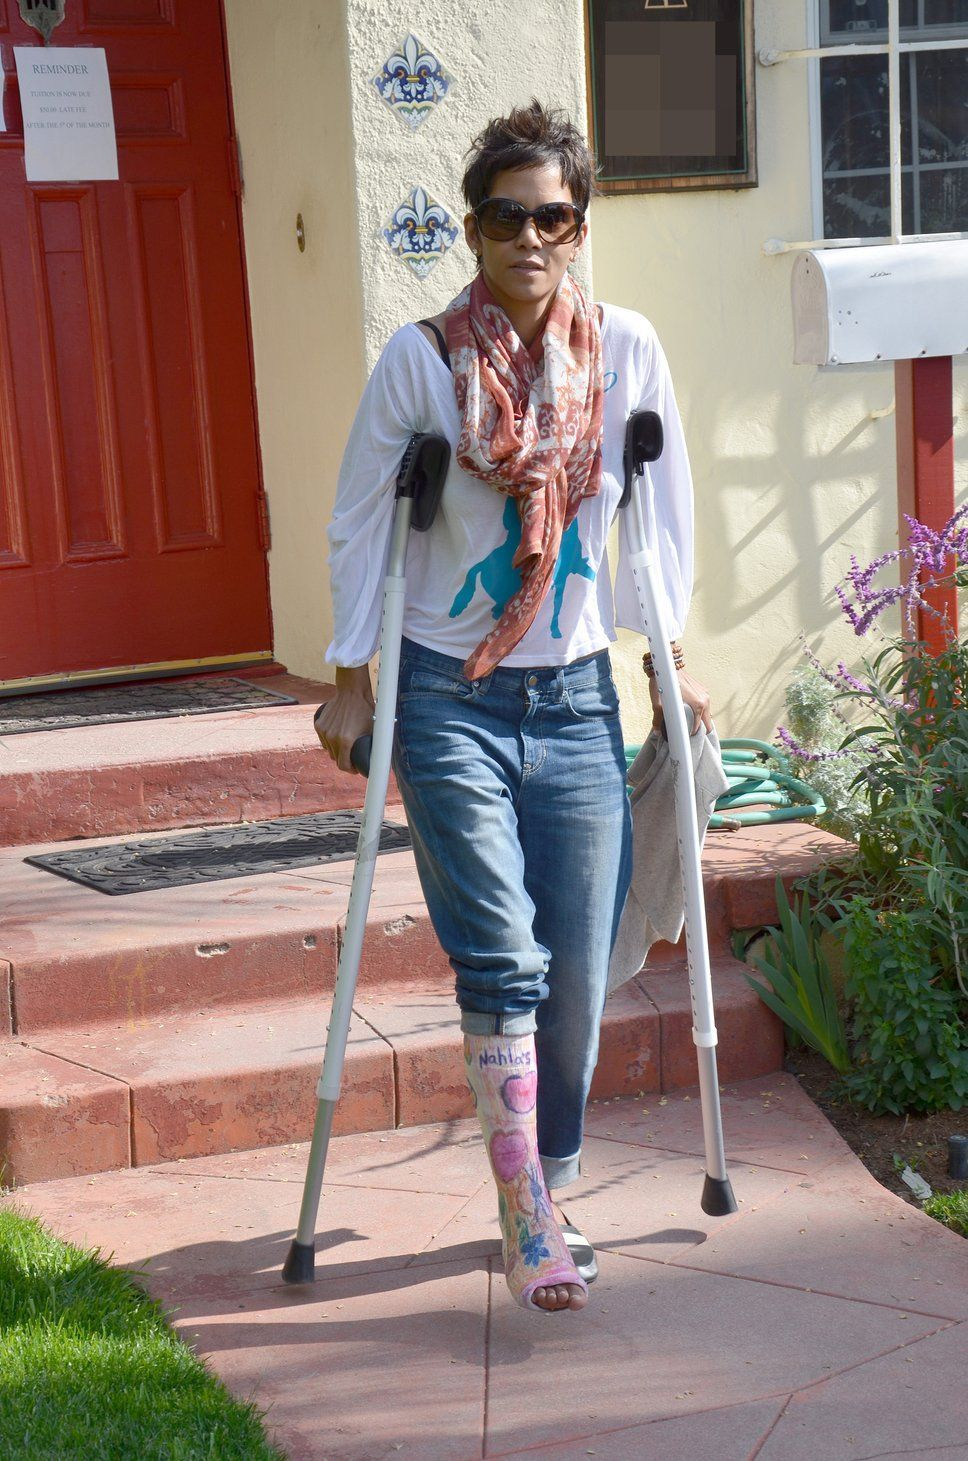 Halle Berry on crutches due to a broken foot  #HalleBerry